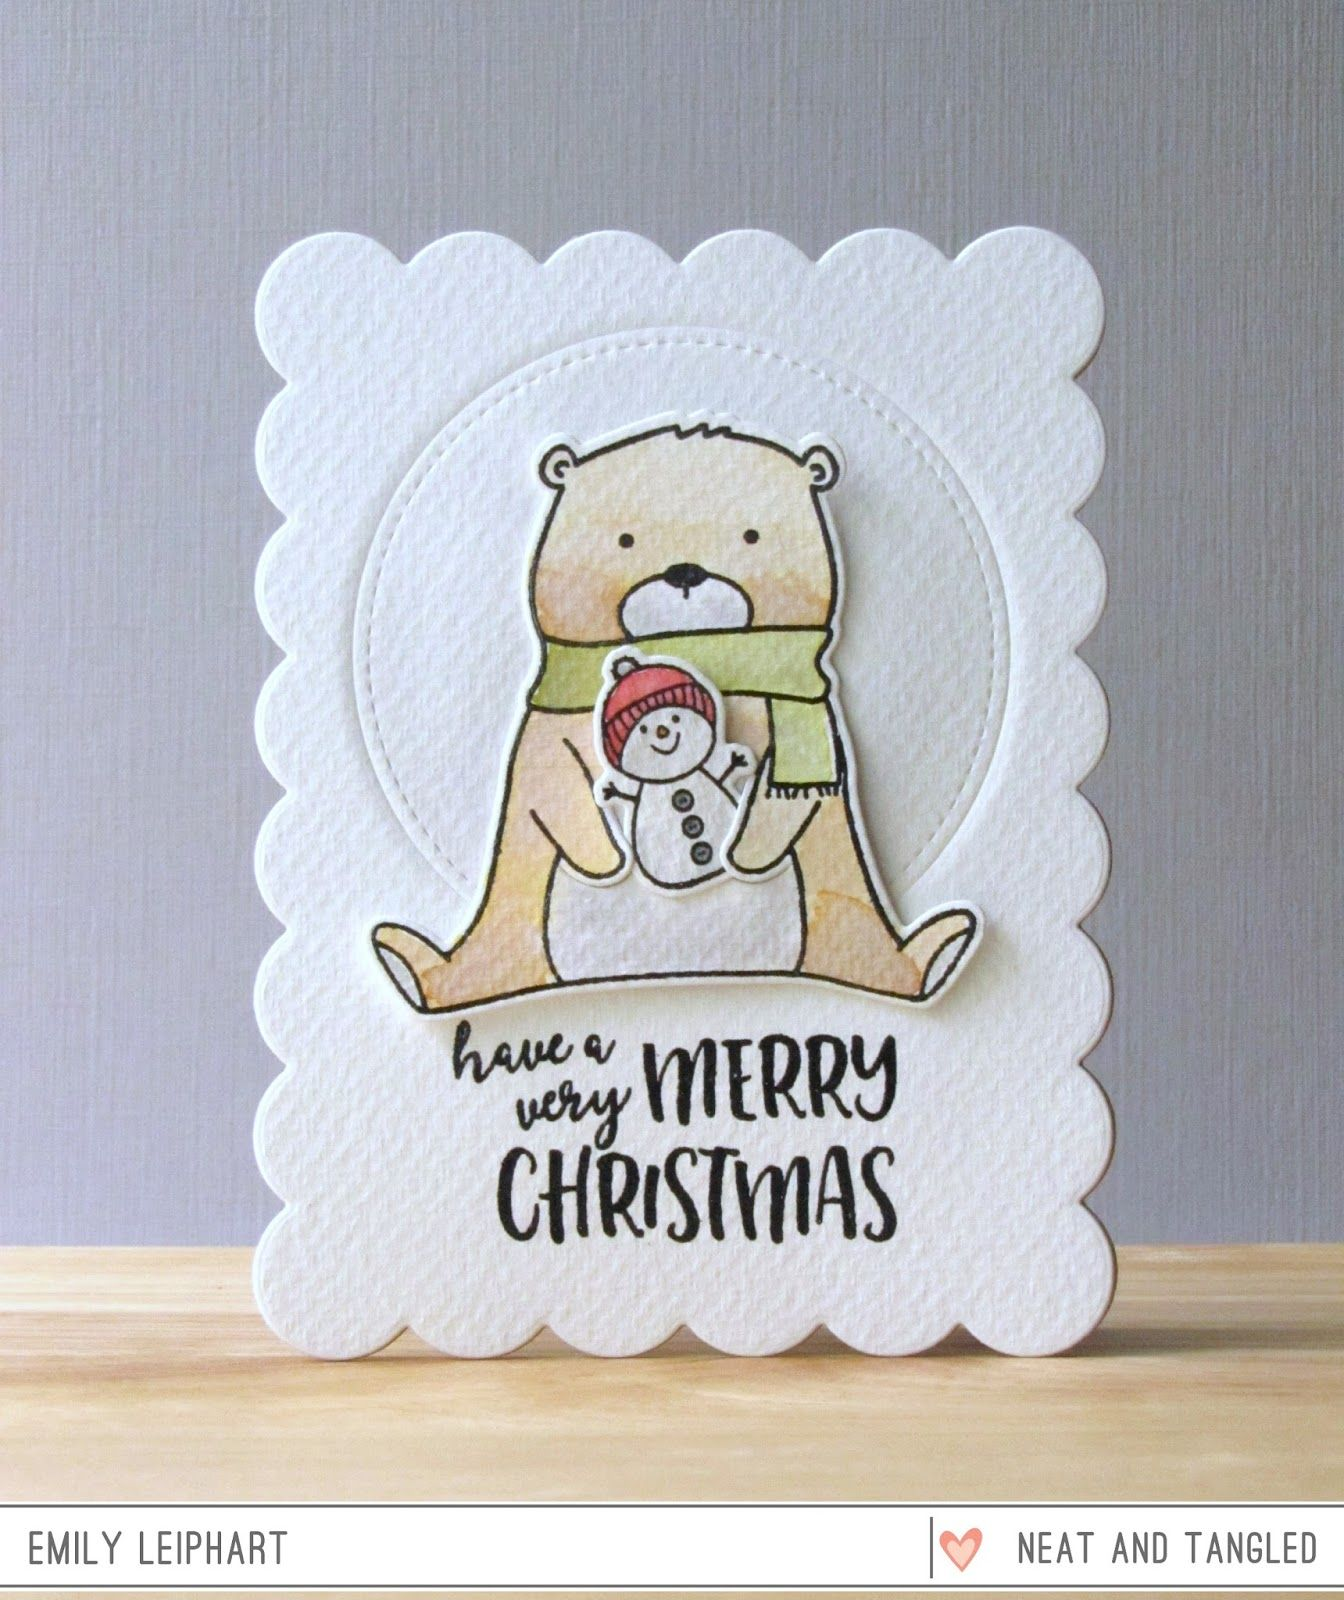 Neat and Tangled: A Beary Merry Christmas with Emily